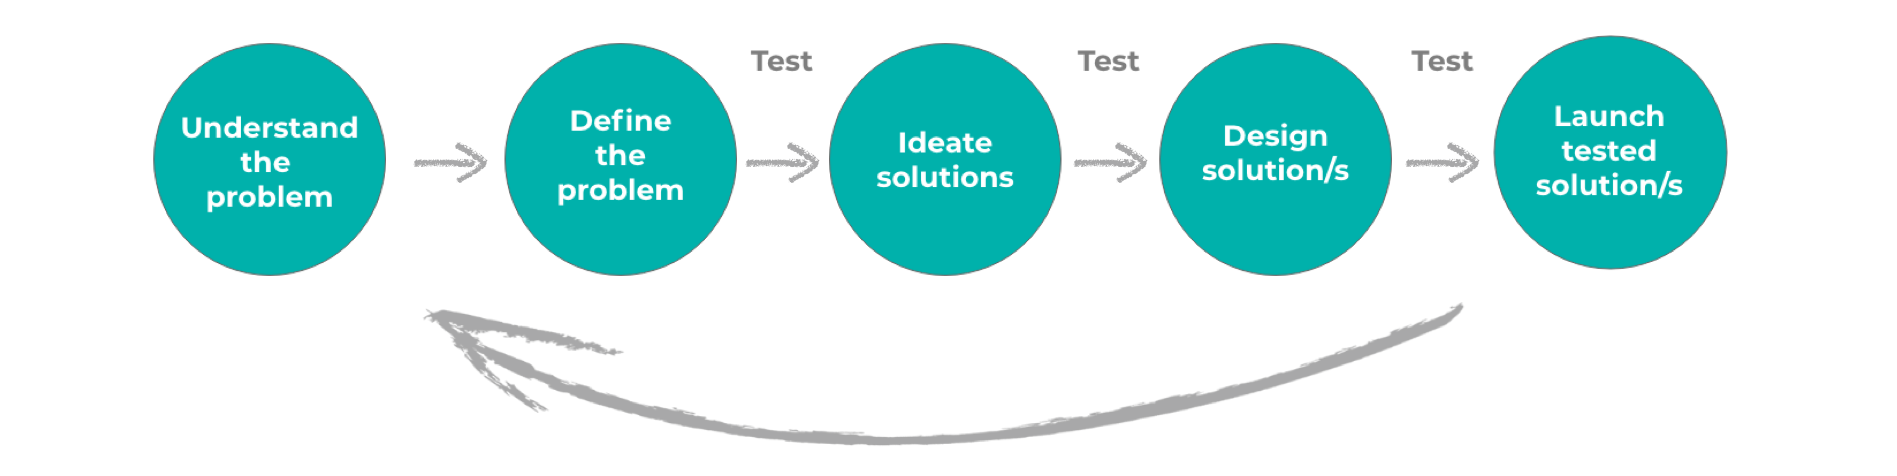 My design process involves frequent testing to  challenge assumptions . I use a variety of methods such as focus groups, online surveys, remote testing and face to face interviews. Different methods are used to match different business needs at different times. No 'one size fits all'.